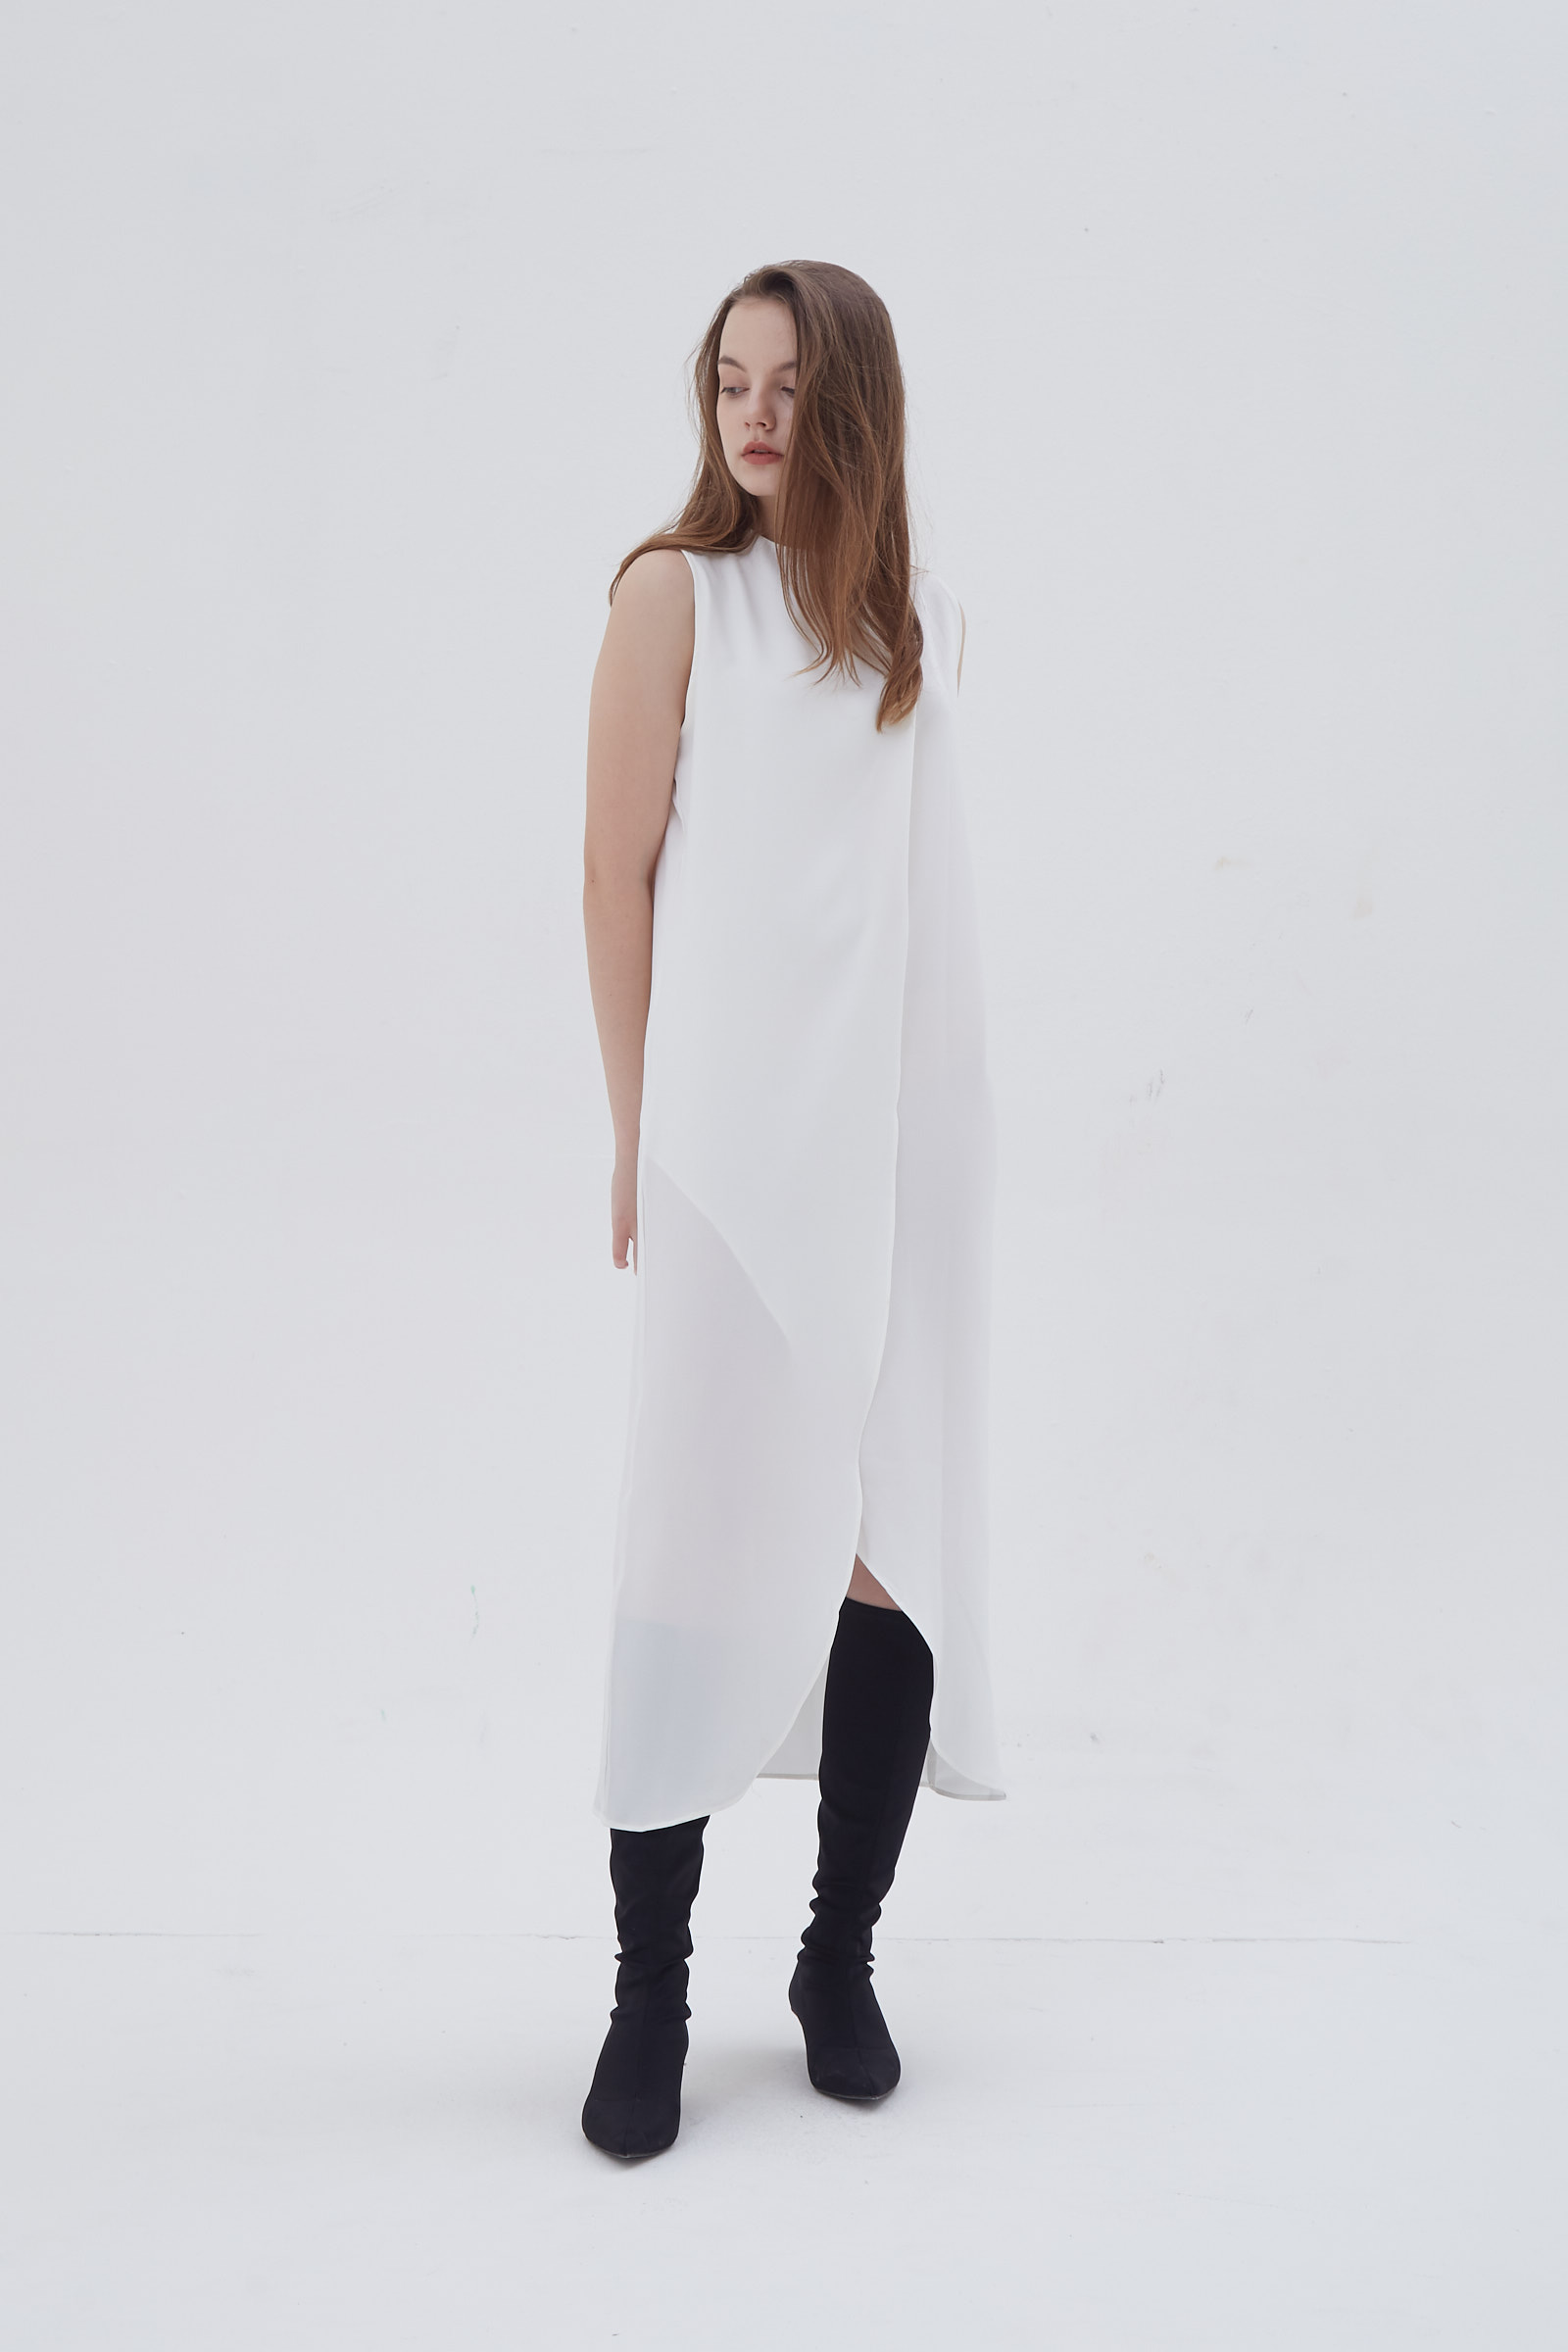 Shopatvelvet Assemble Dress White